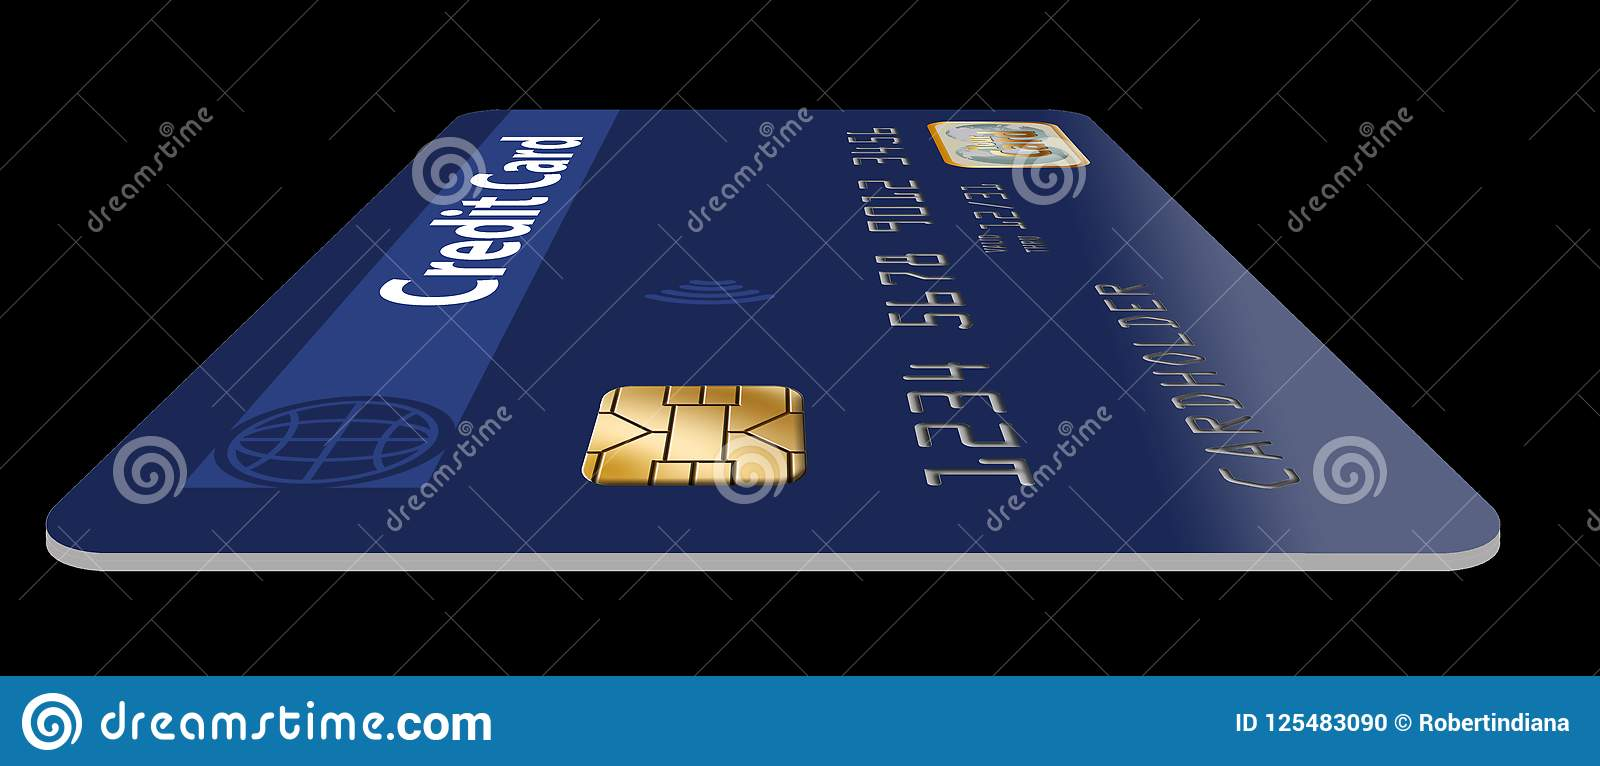 Here is a good view of an EMV chip on a credit card.